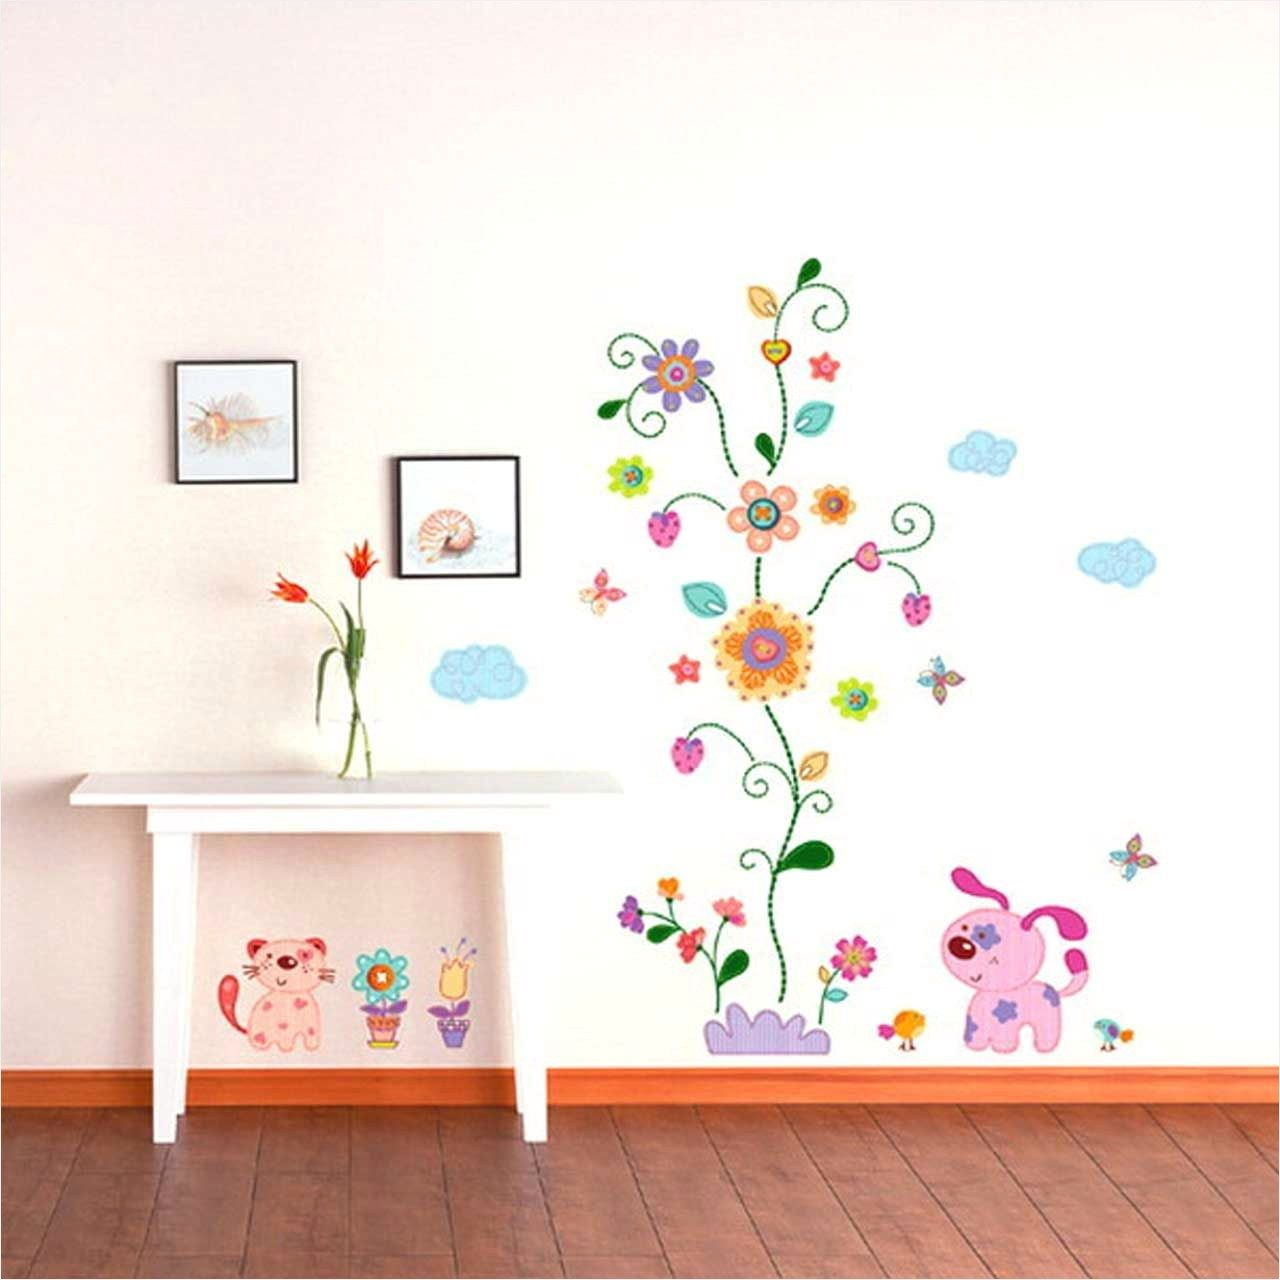 Hugedomains Com Kids Room Wall Decals Childrens Wall Decals Kid Room Decor